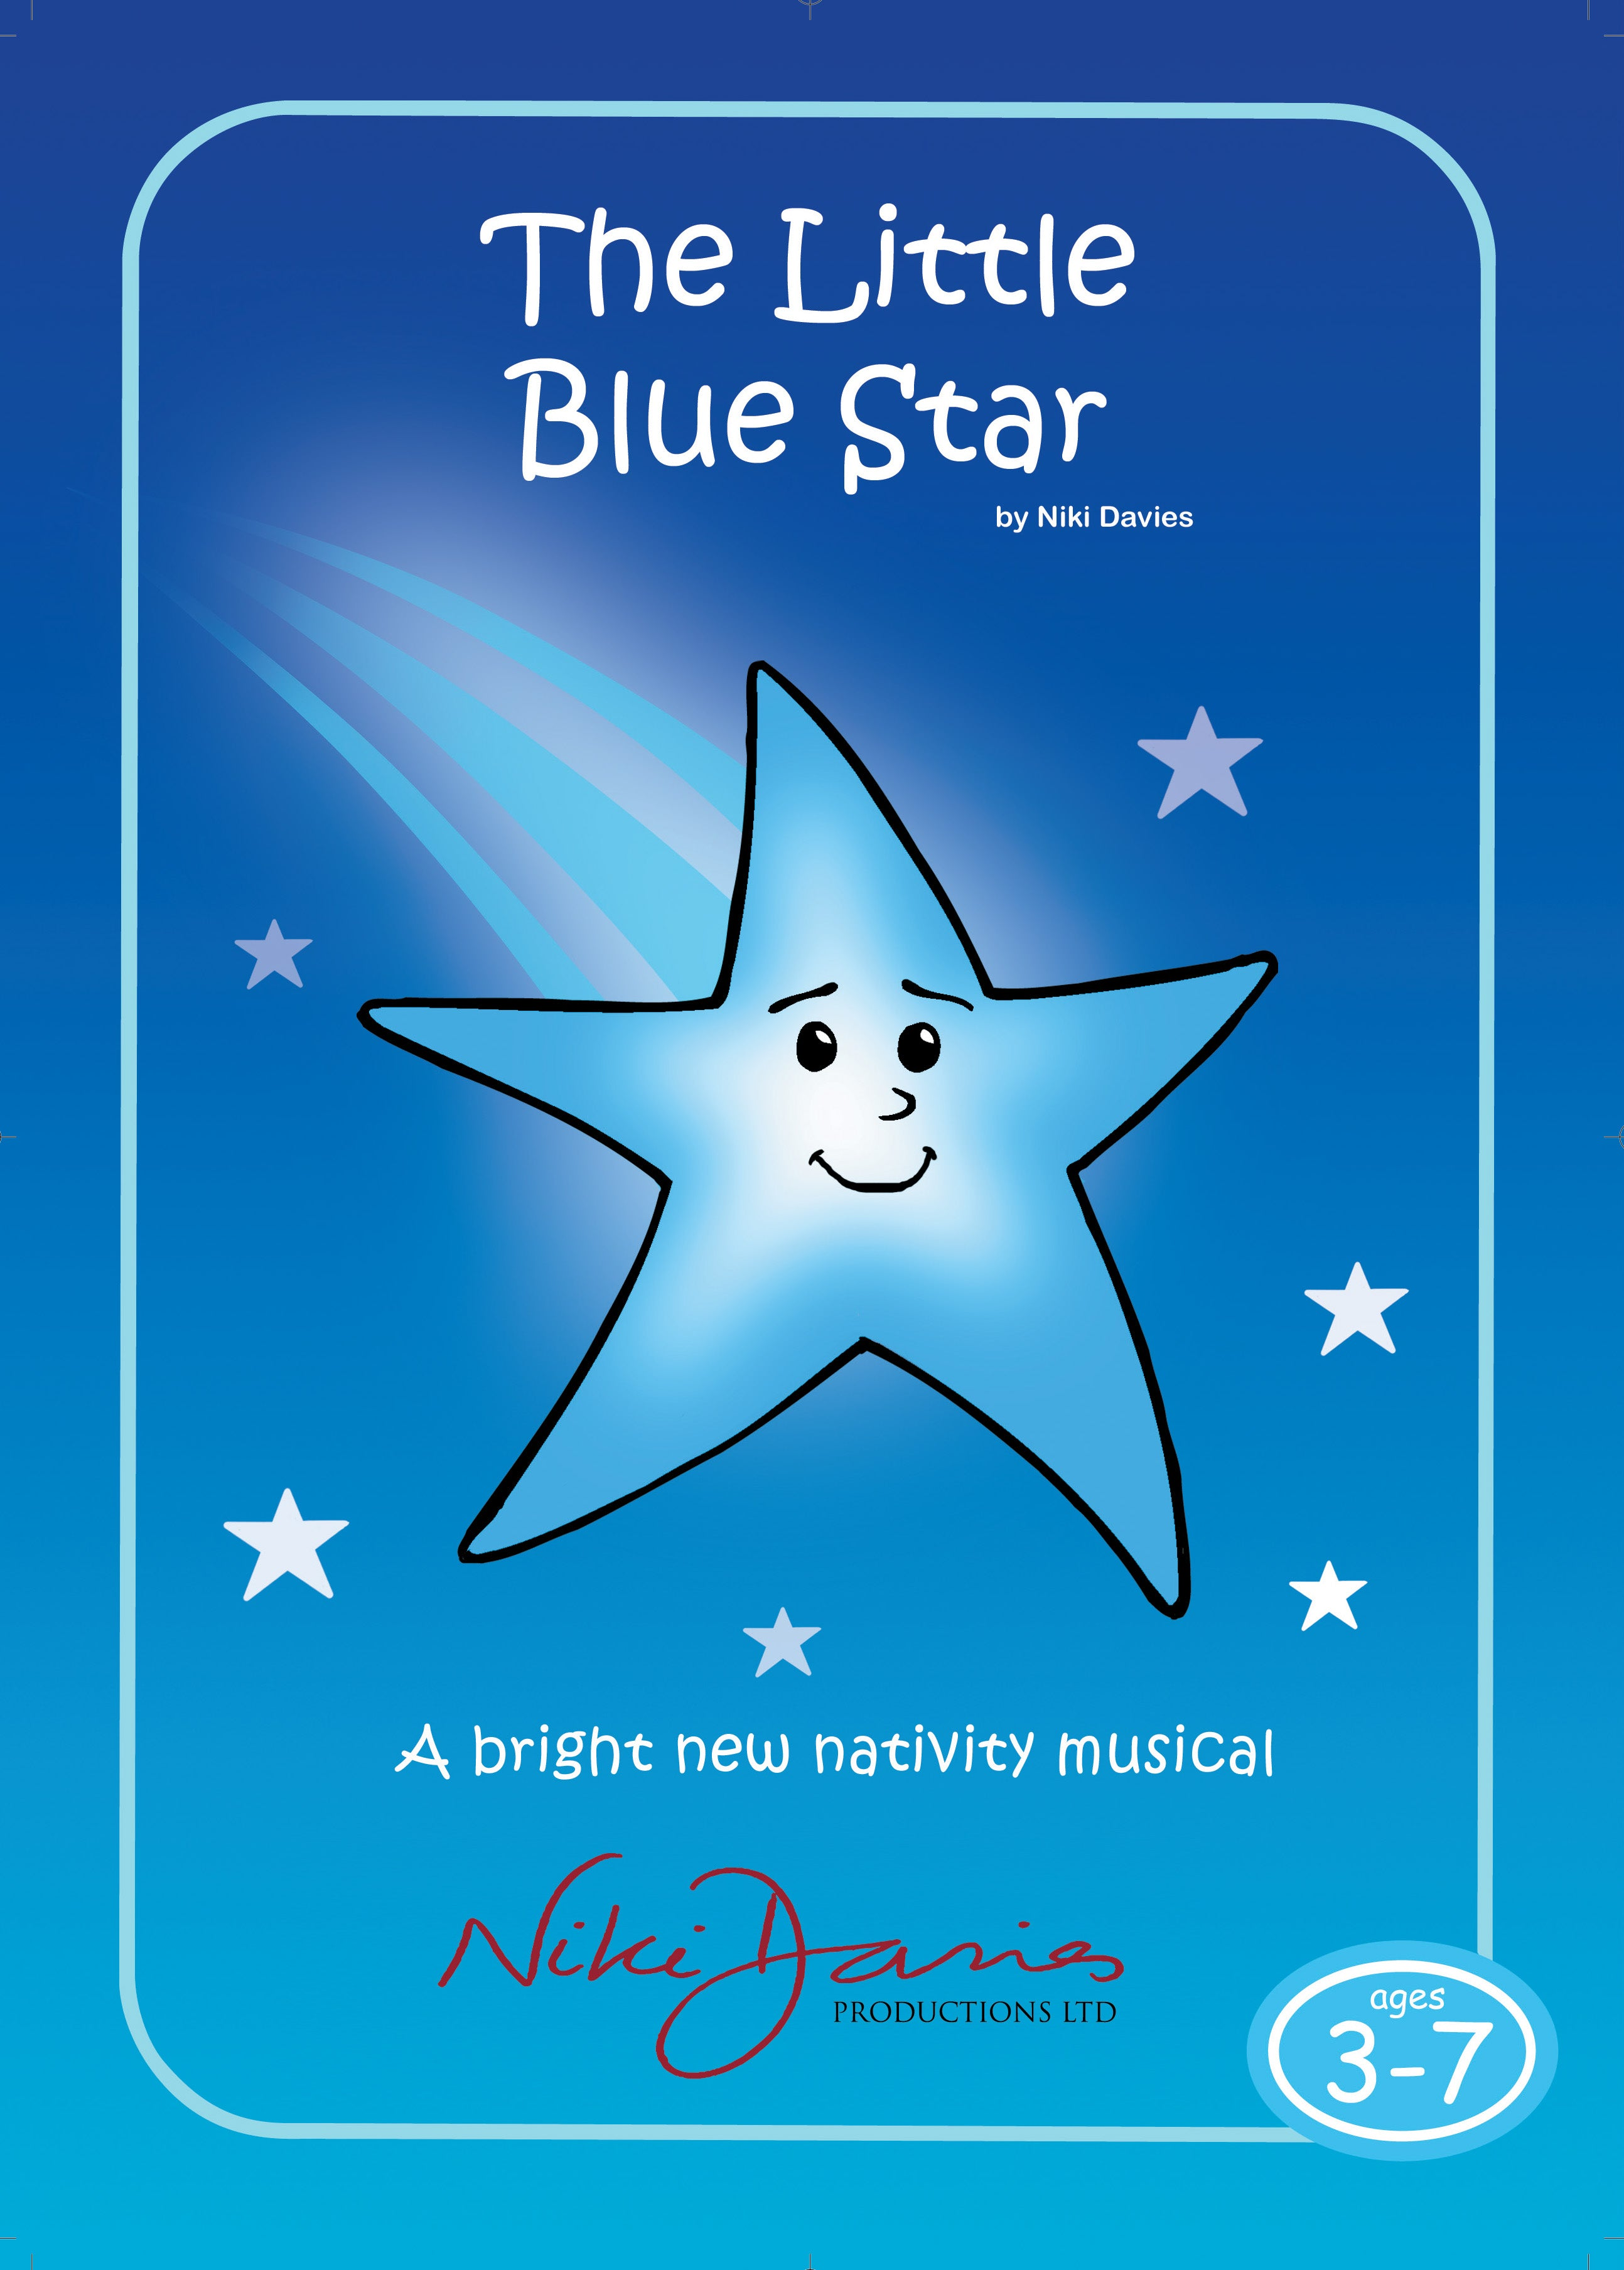 The Little Blue Star